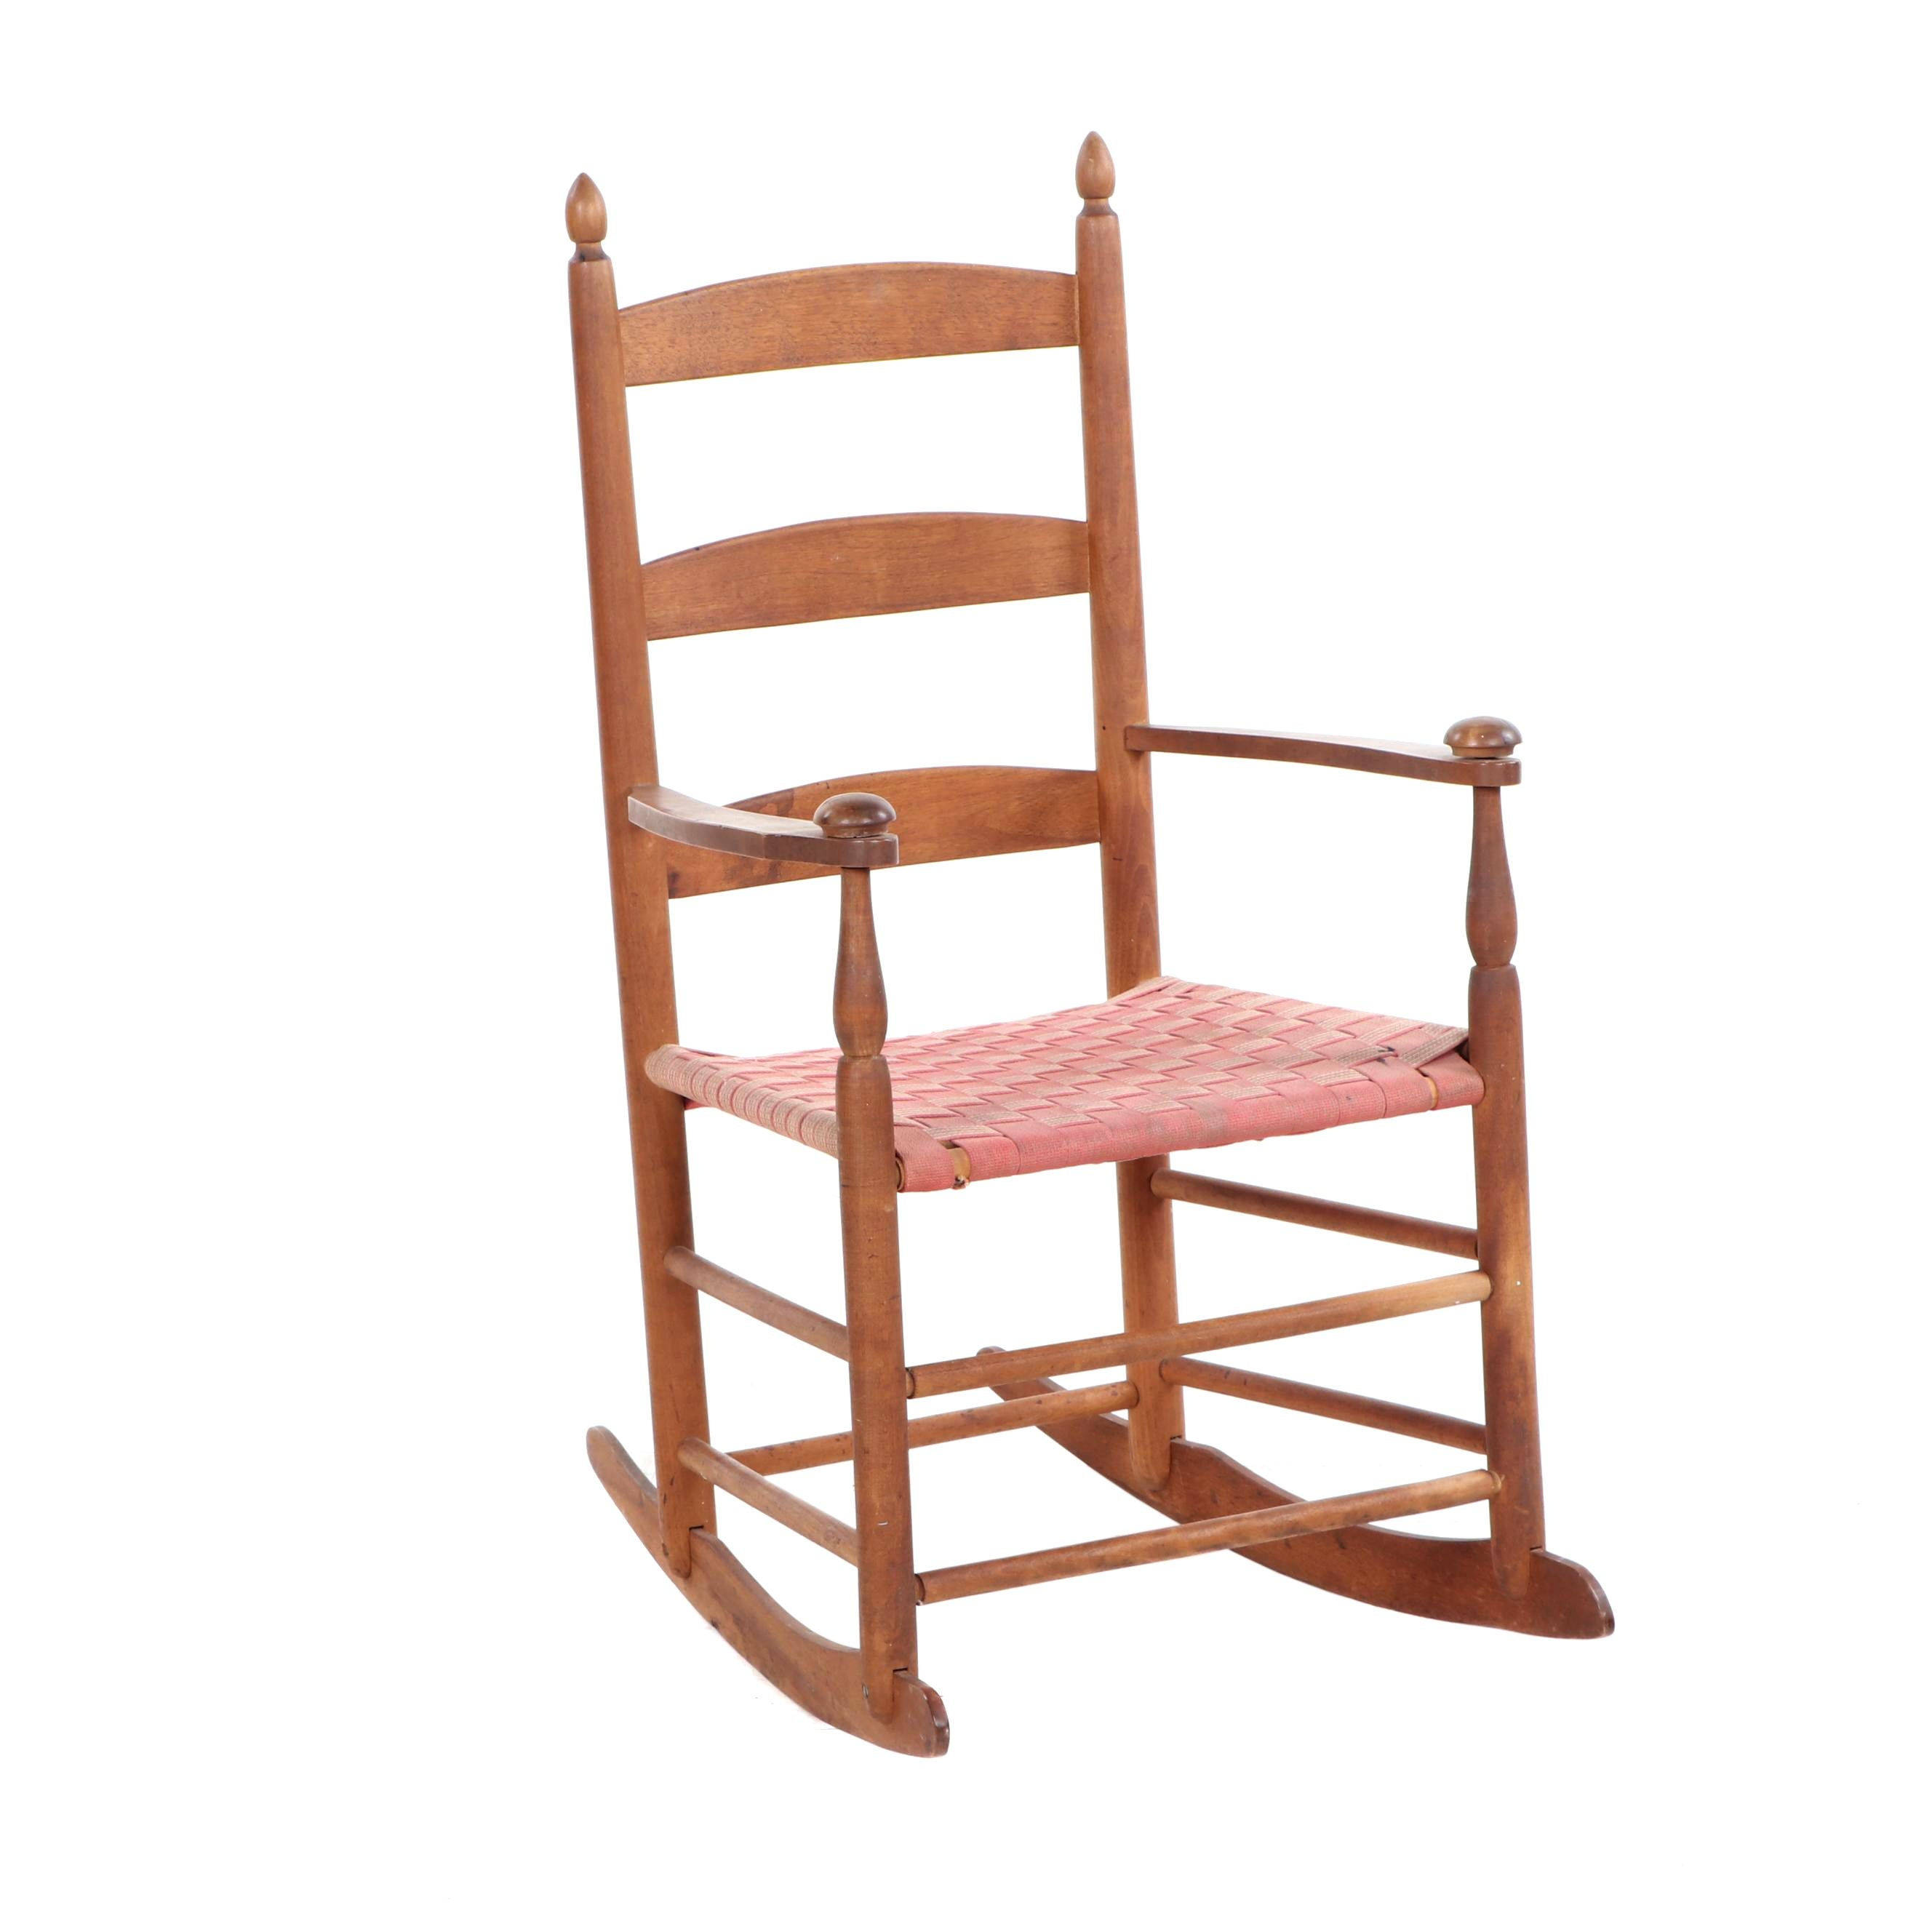 Diminutive Shaker Ladderback Rocking Chair with Woven Seat